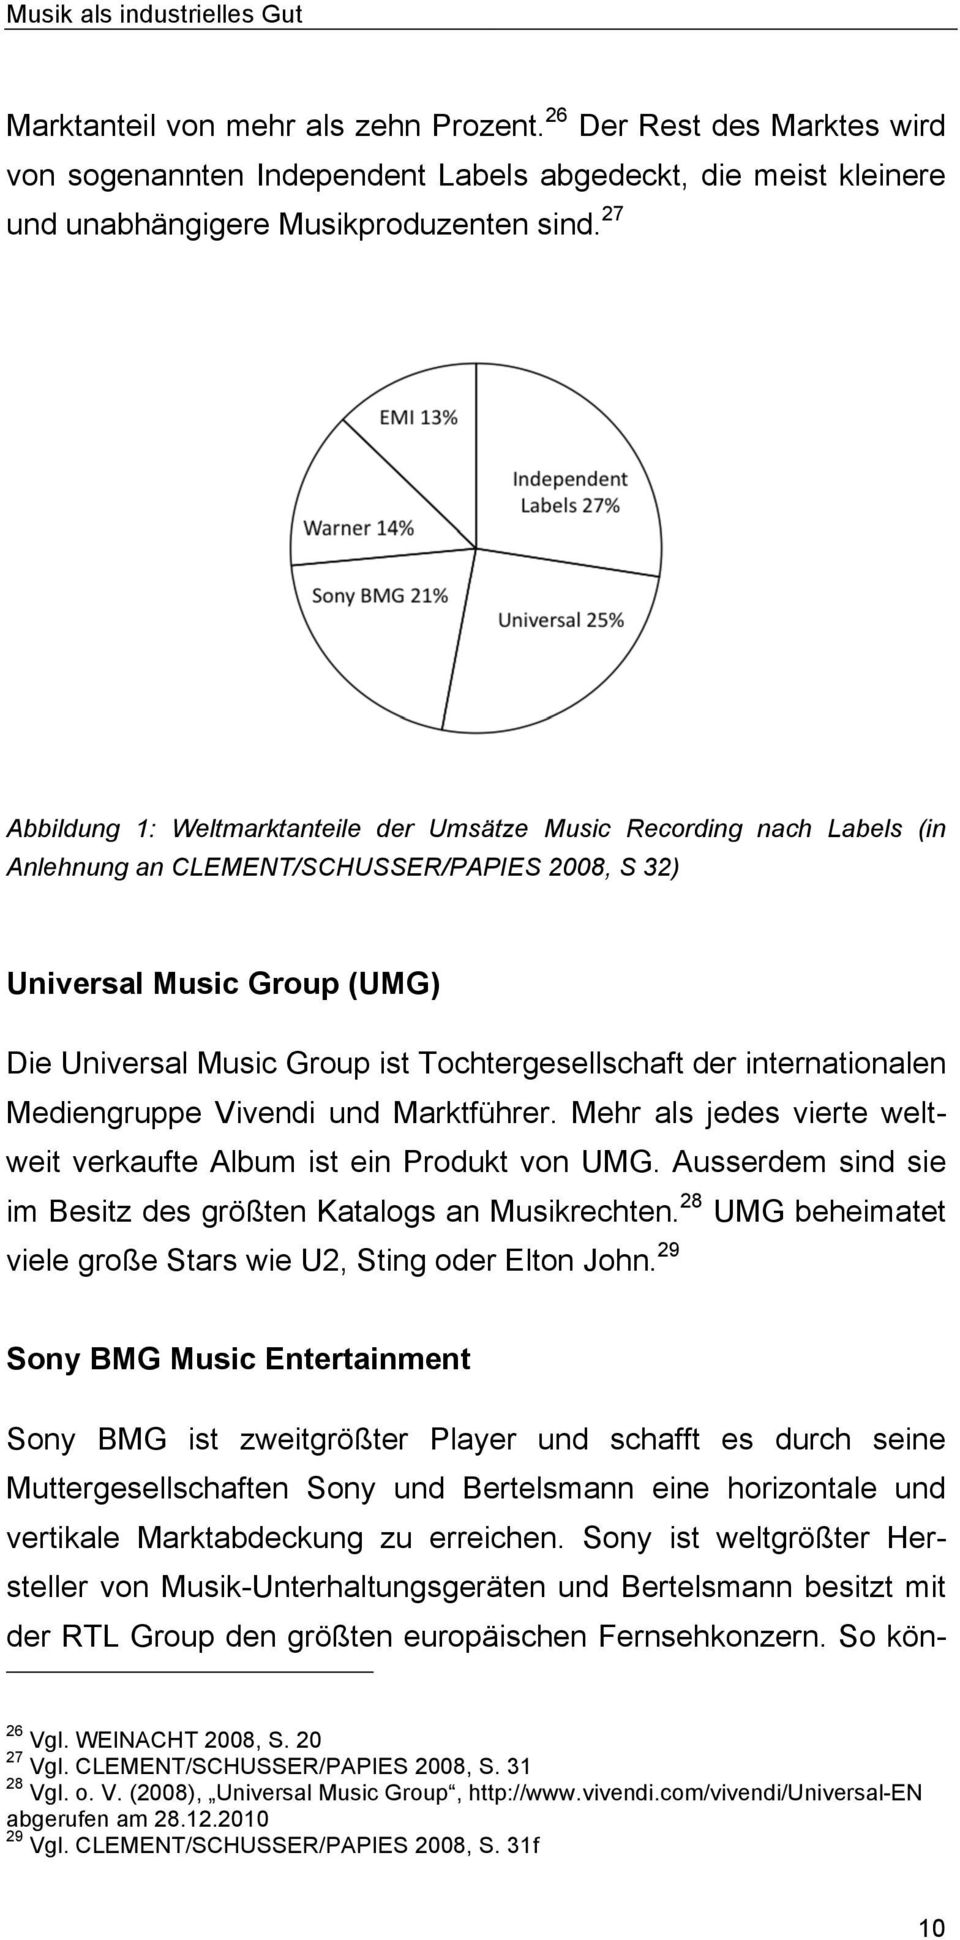 27 Abbildung 1: Weltmarktanteile der Umsätze Music Recording nach Labels (in Anlehnung an CLEMENT/SCHUSSER/PAPIES 2008, S 32) Universal Music Group (UMG) Die Universal Music Group ist